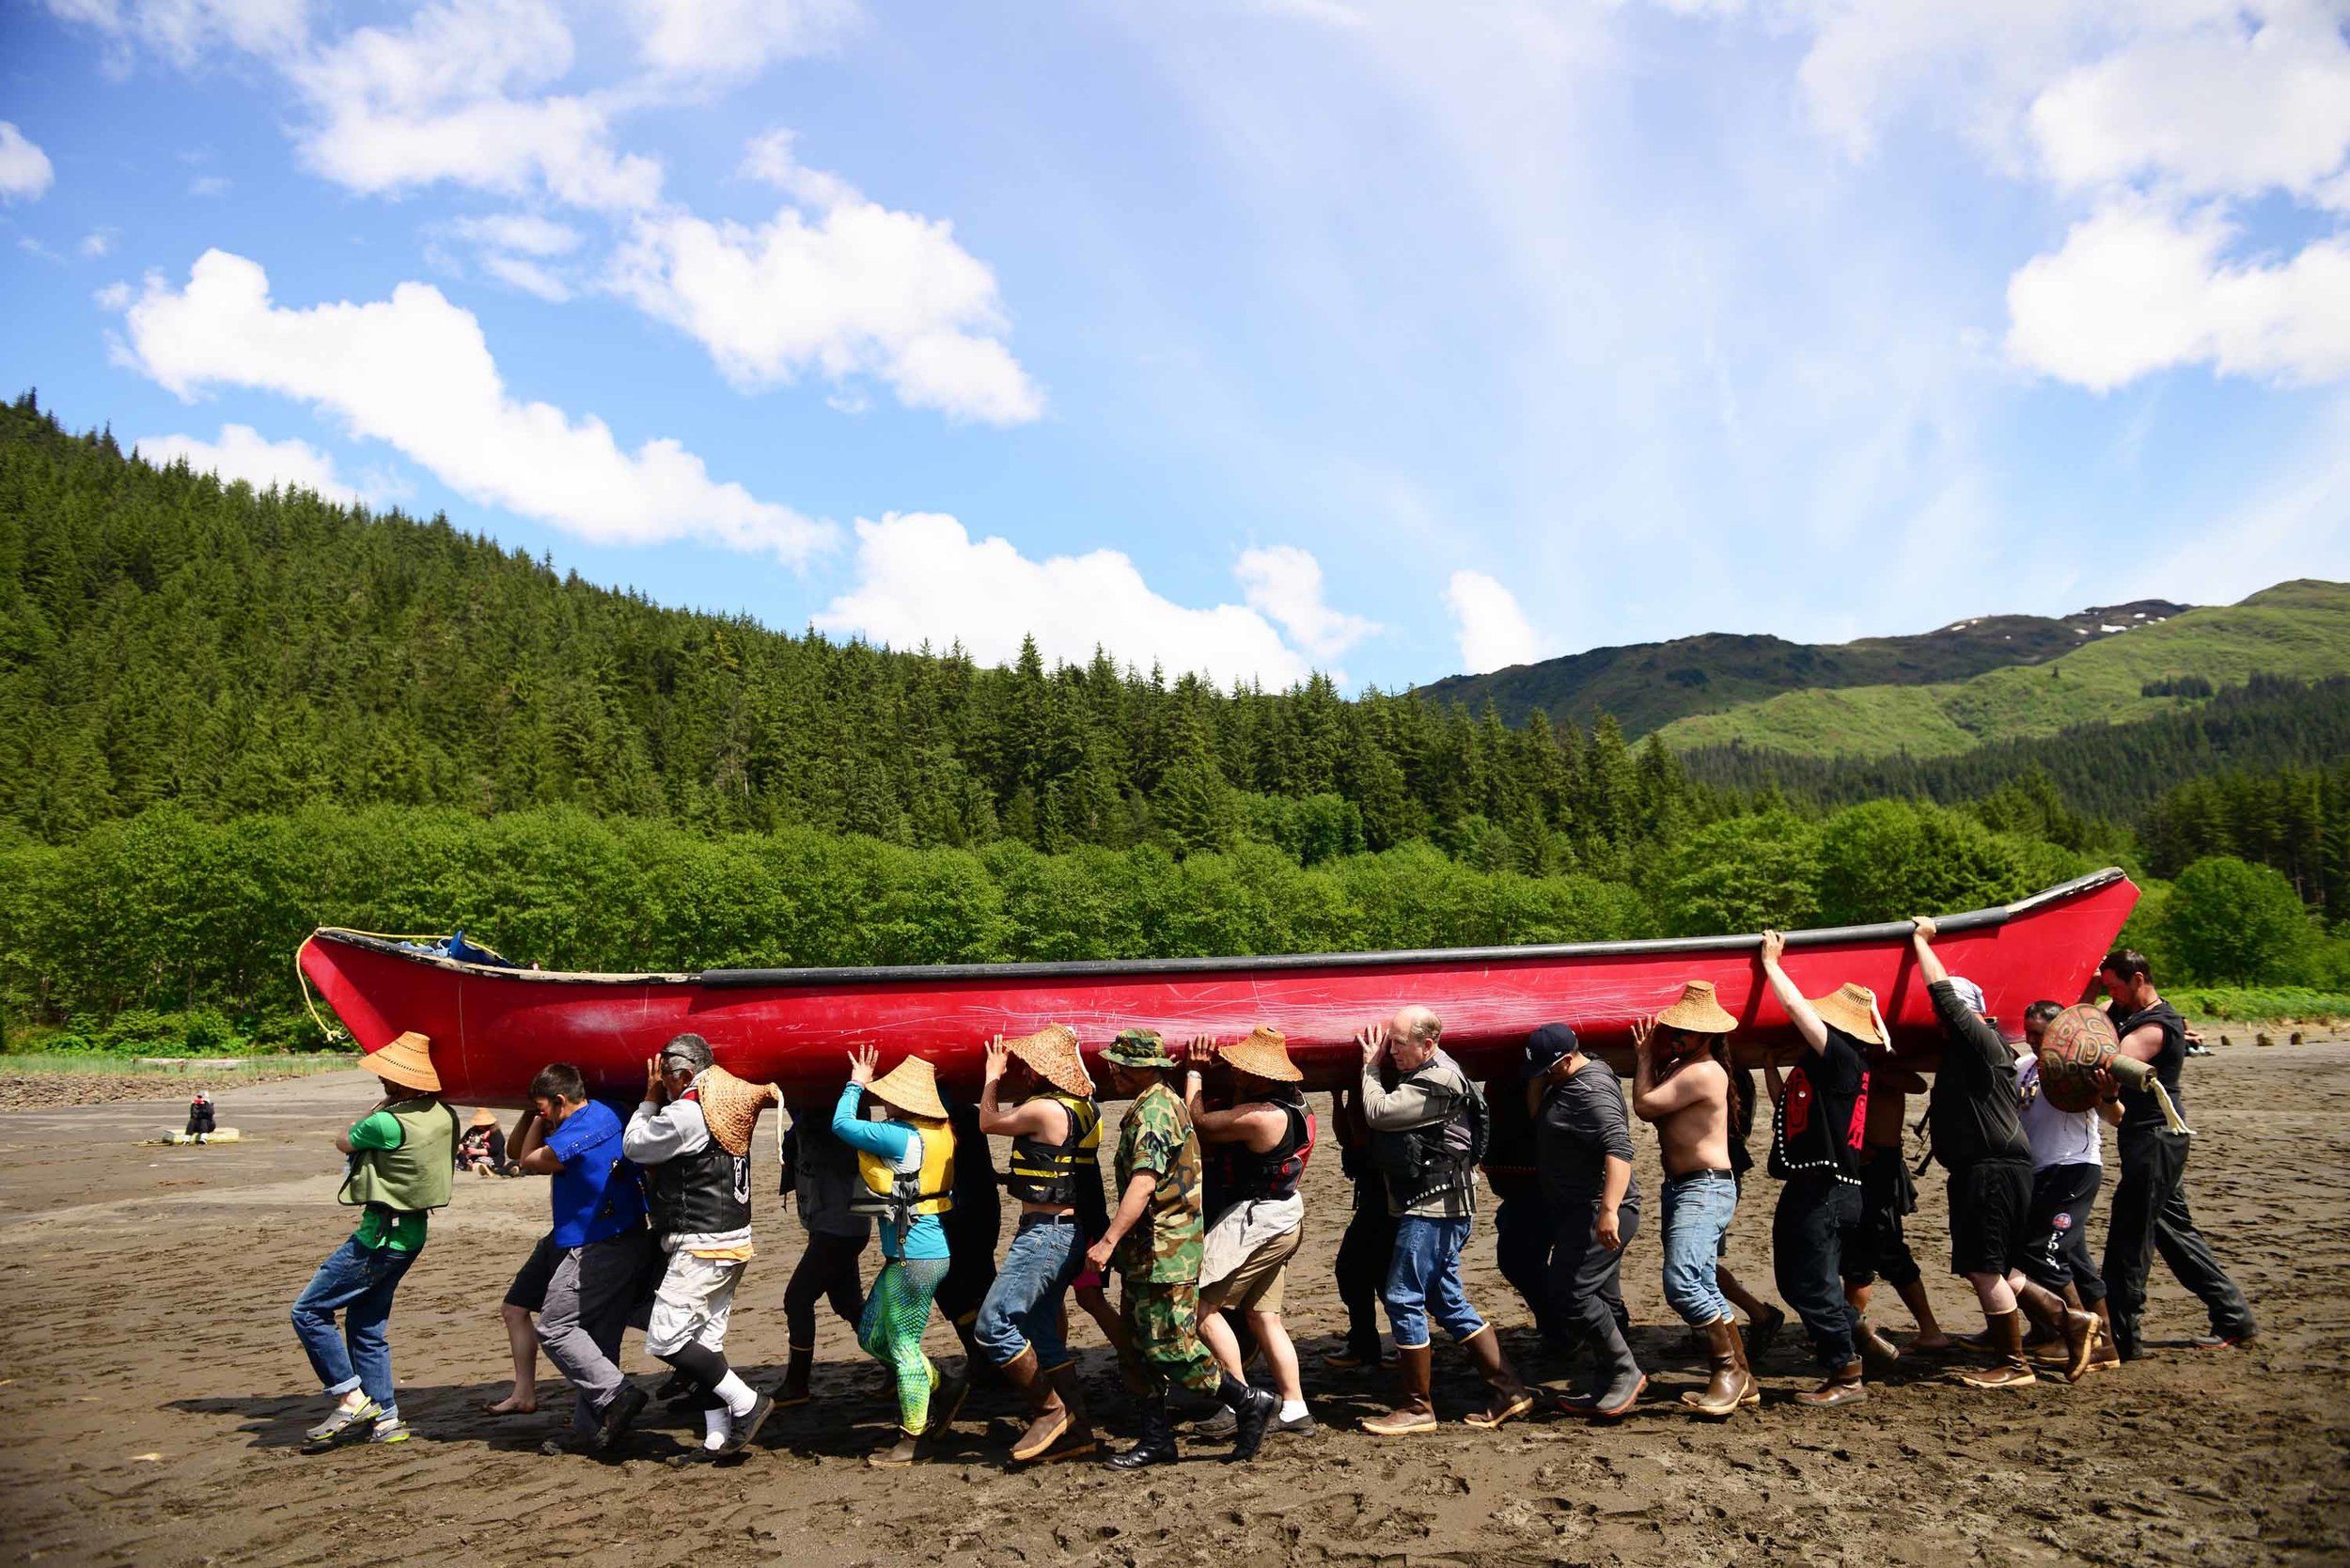 Southeast Alaska's biennial Celebration of its Alaska Native heritage begins as paddlers arrive in Juneau after long canoe journeys from around the region. Paddlers including Gov. Bill Walker carry a vessel down to the water to join the last leg of the journey. June 5, 2018.